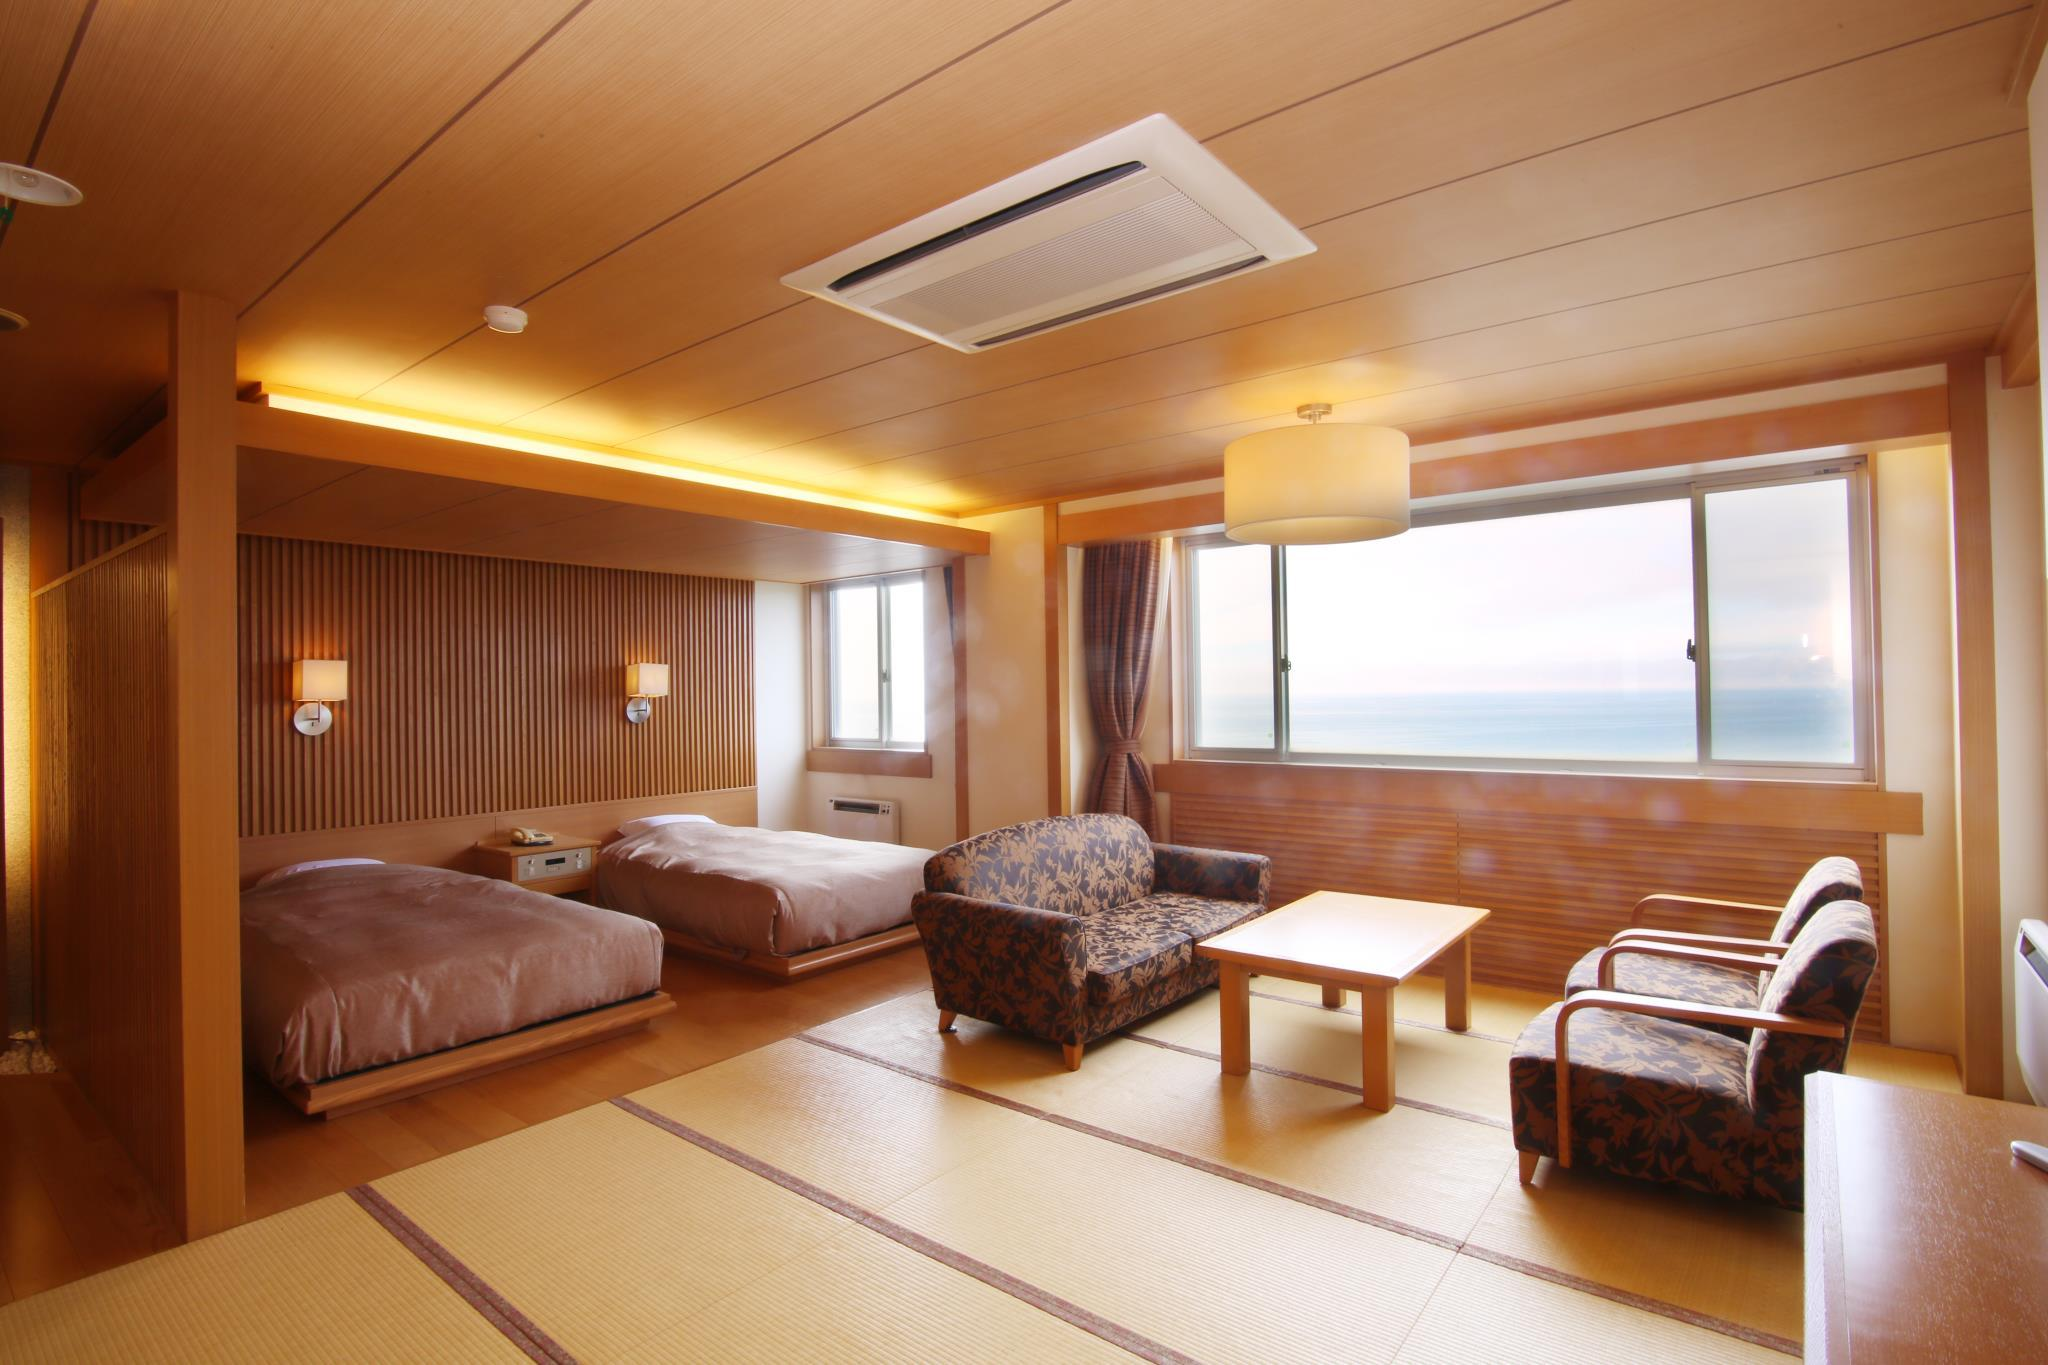 Deluxe Room with Tatami Area for 4 People